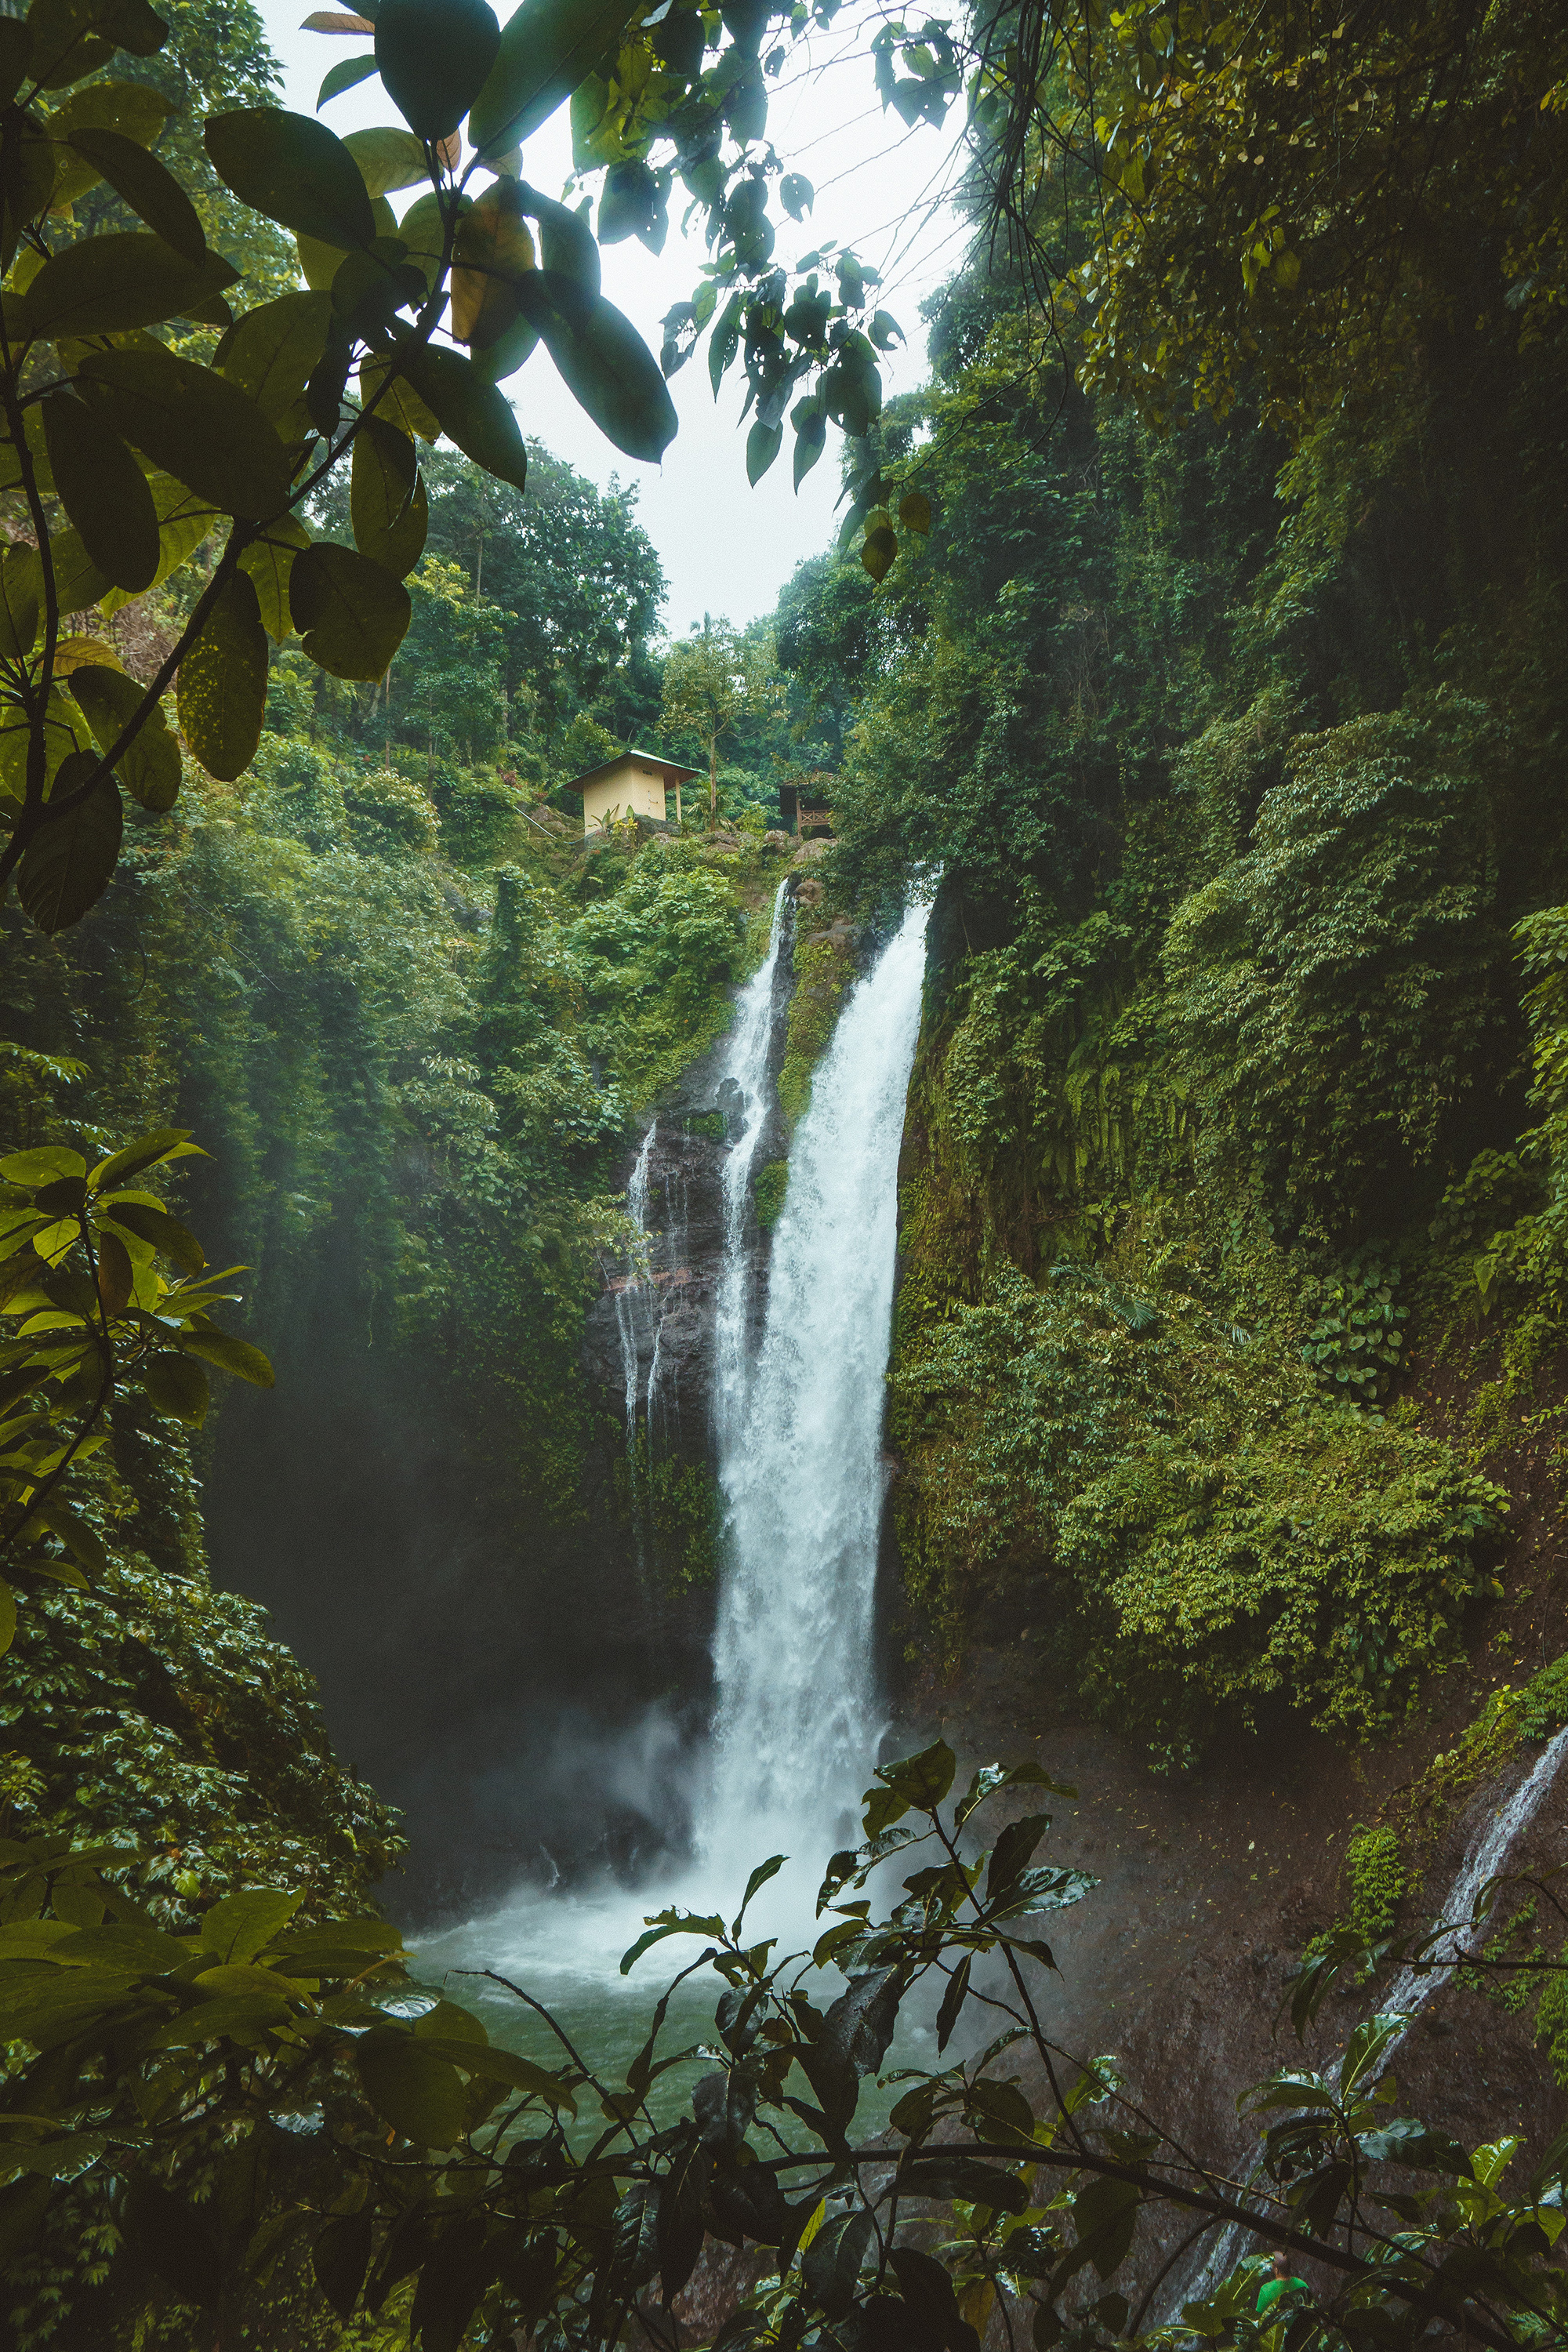 Deforestation and climate change are threatening the functionality of our magnificent rainforests